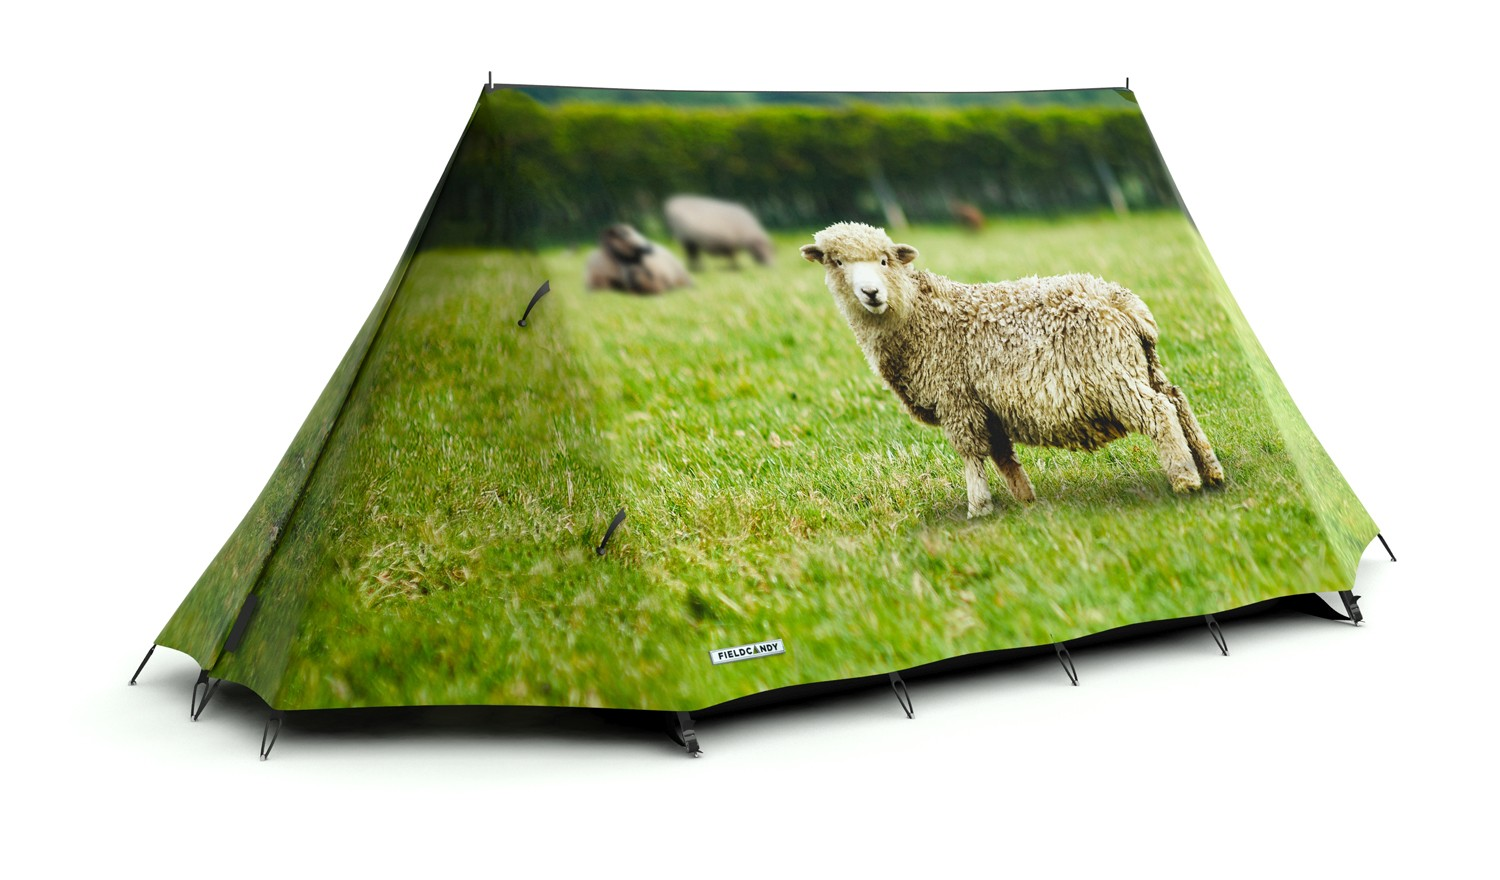 ... 1500 × 880 pixels. Field Candy Animal Farm Sheep Tent  sc 1 st  Yorkshire Dales Food & Field Candy Animal Farm Sheep Tent | Yorkshire Dales Food